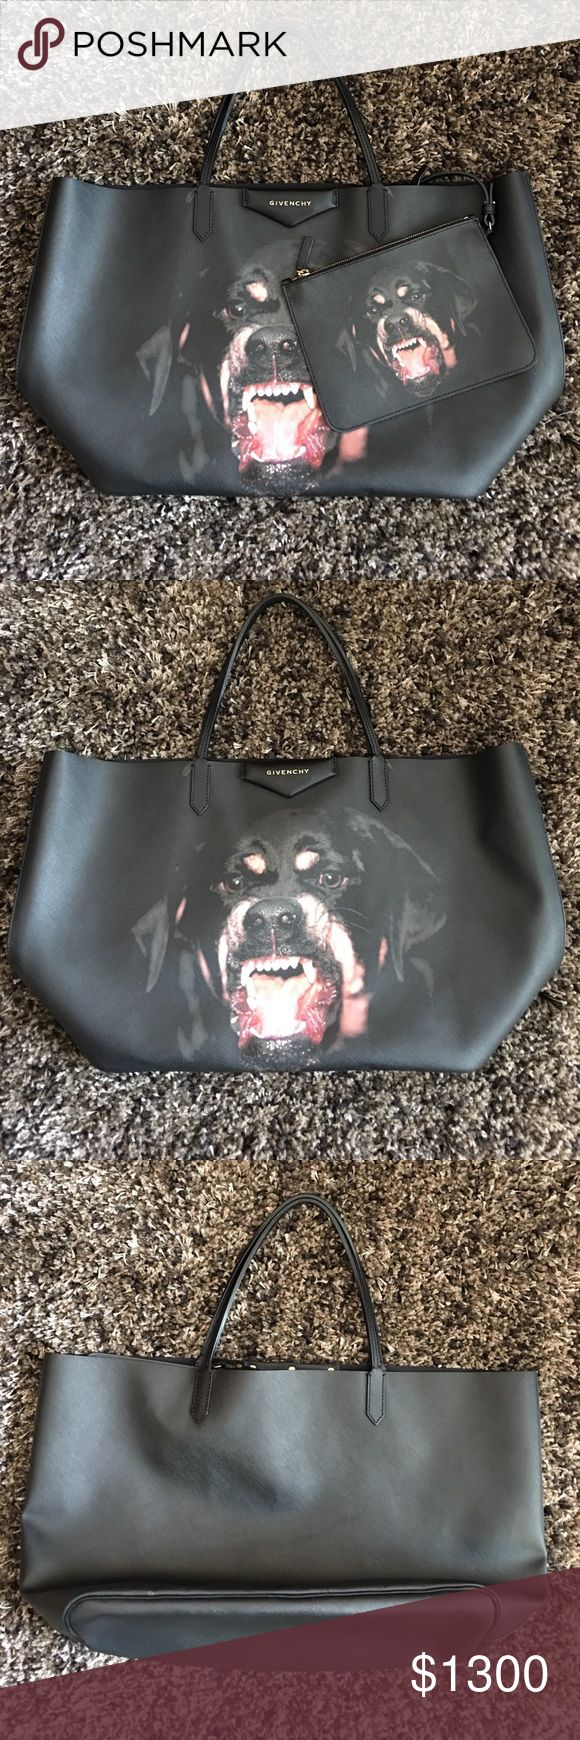 Givenchy Rottweiler Tote **Authentic** Givenchy Rottweiler Tote size Large ! Original retail for $2000. Only worn handful of times, in beautiful condition. Very firm in my price due to these bags being very rare and hard to come across. Comes with Rottweiler pouch as well. Givenchy Bags Totes